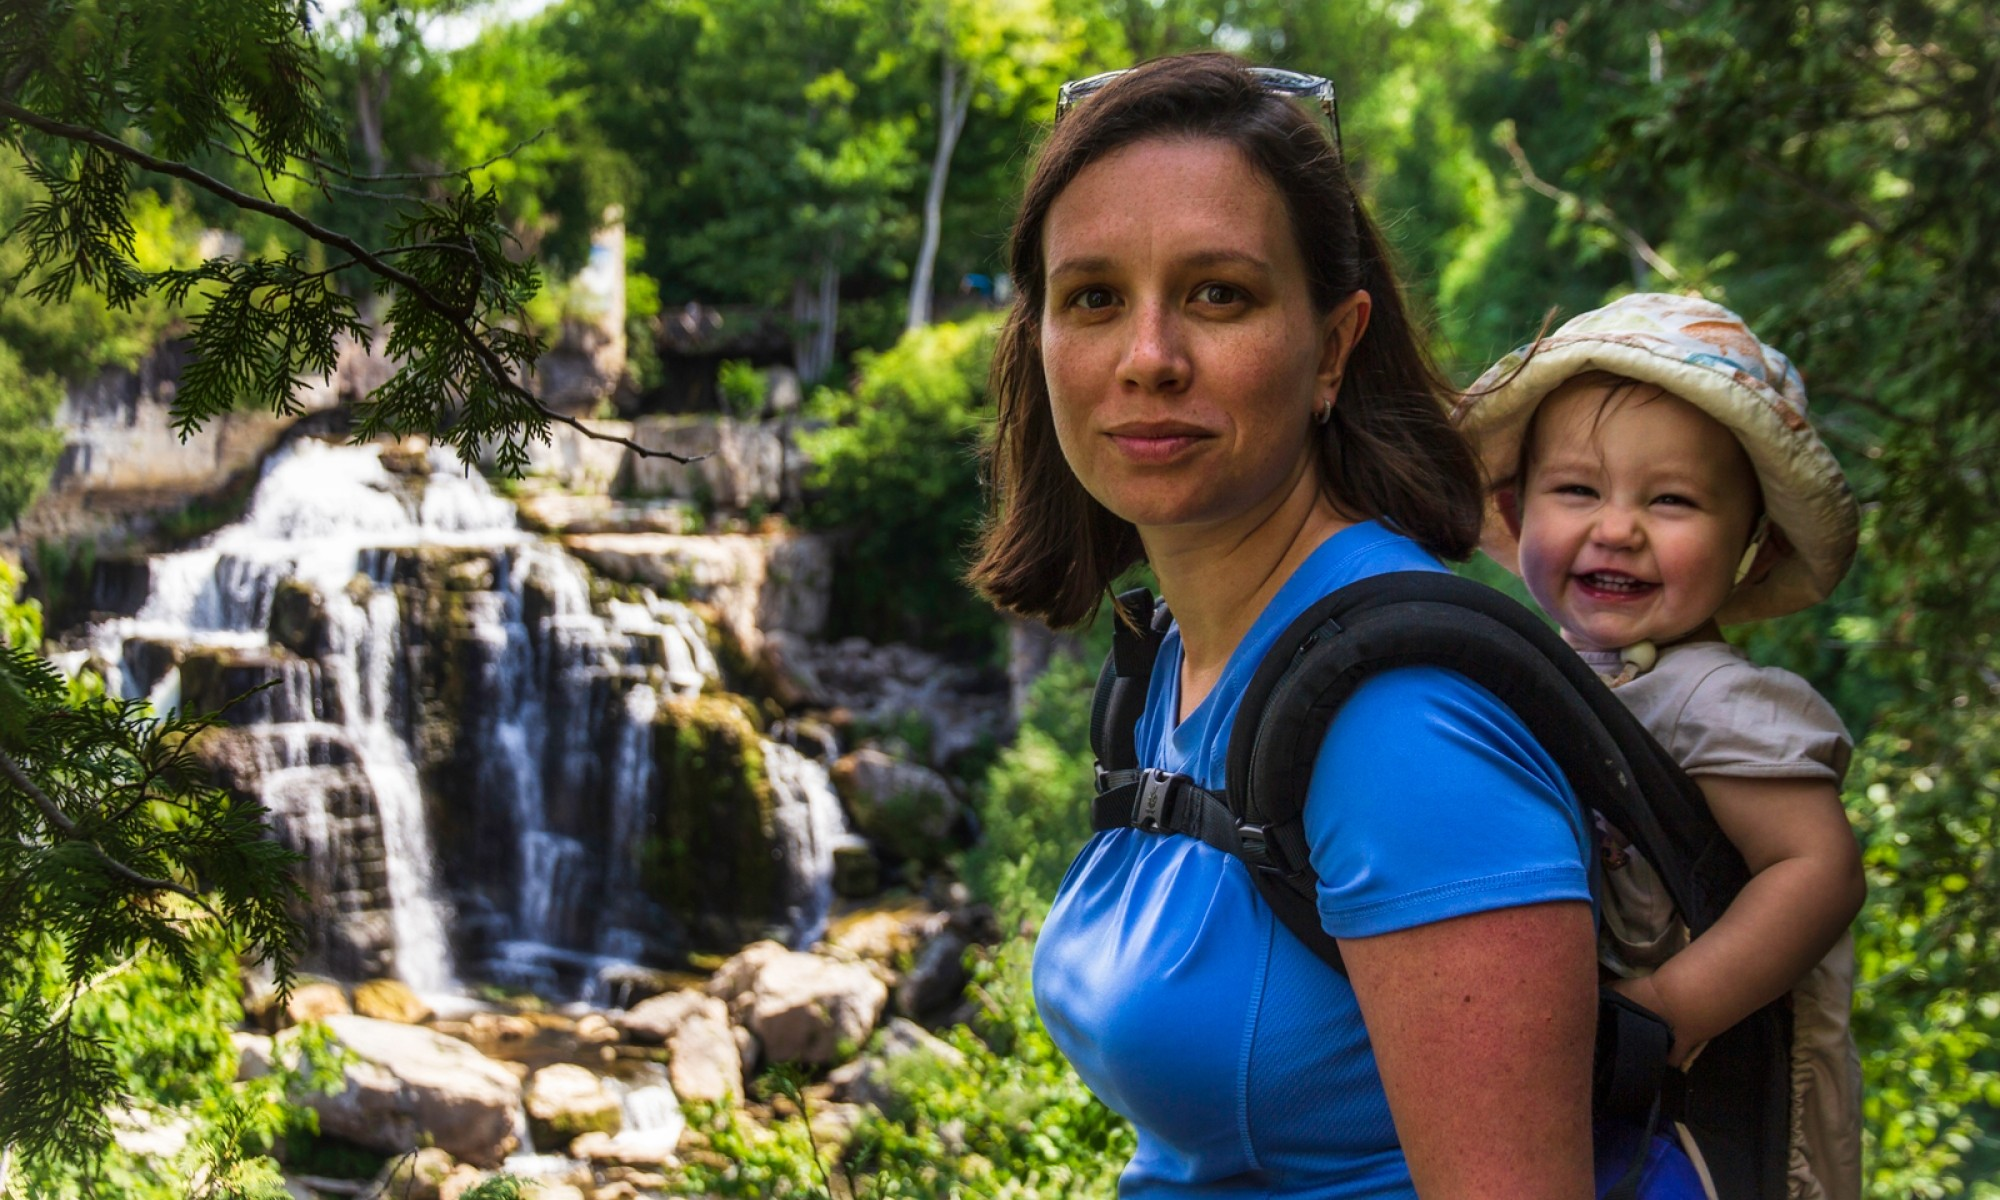 Mother and baby hiking at Inglis Falls